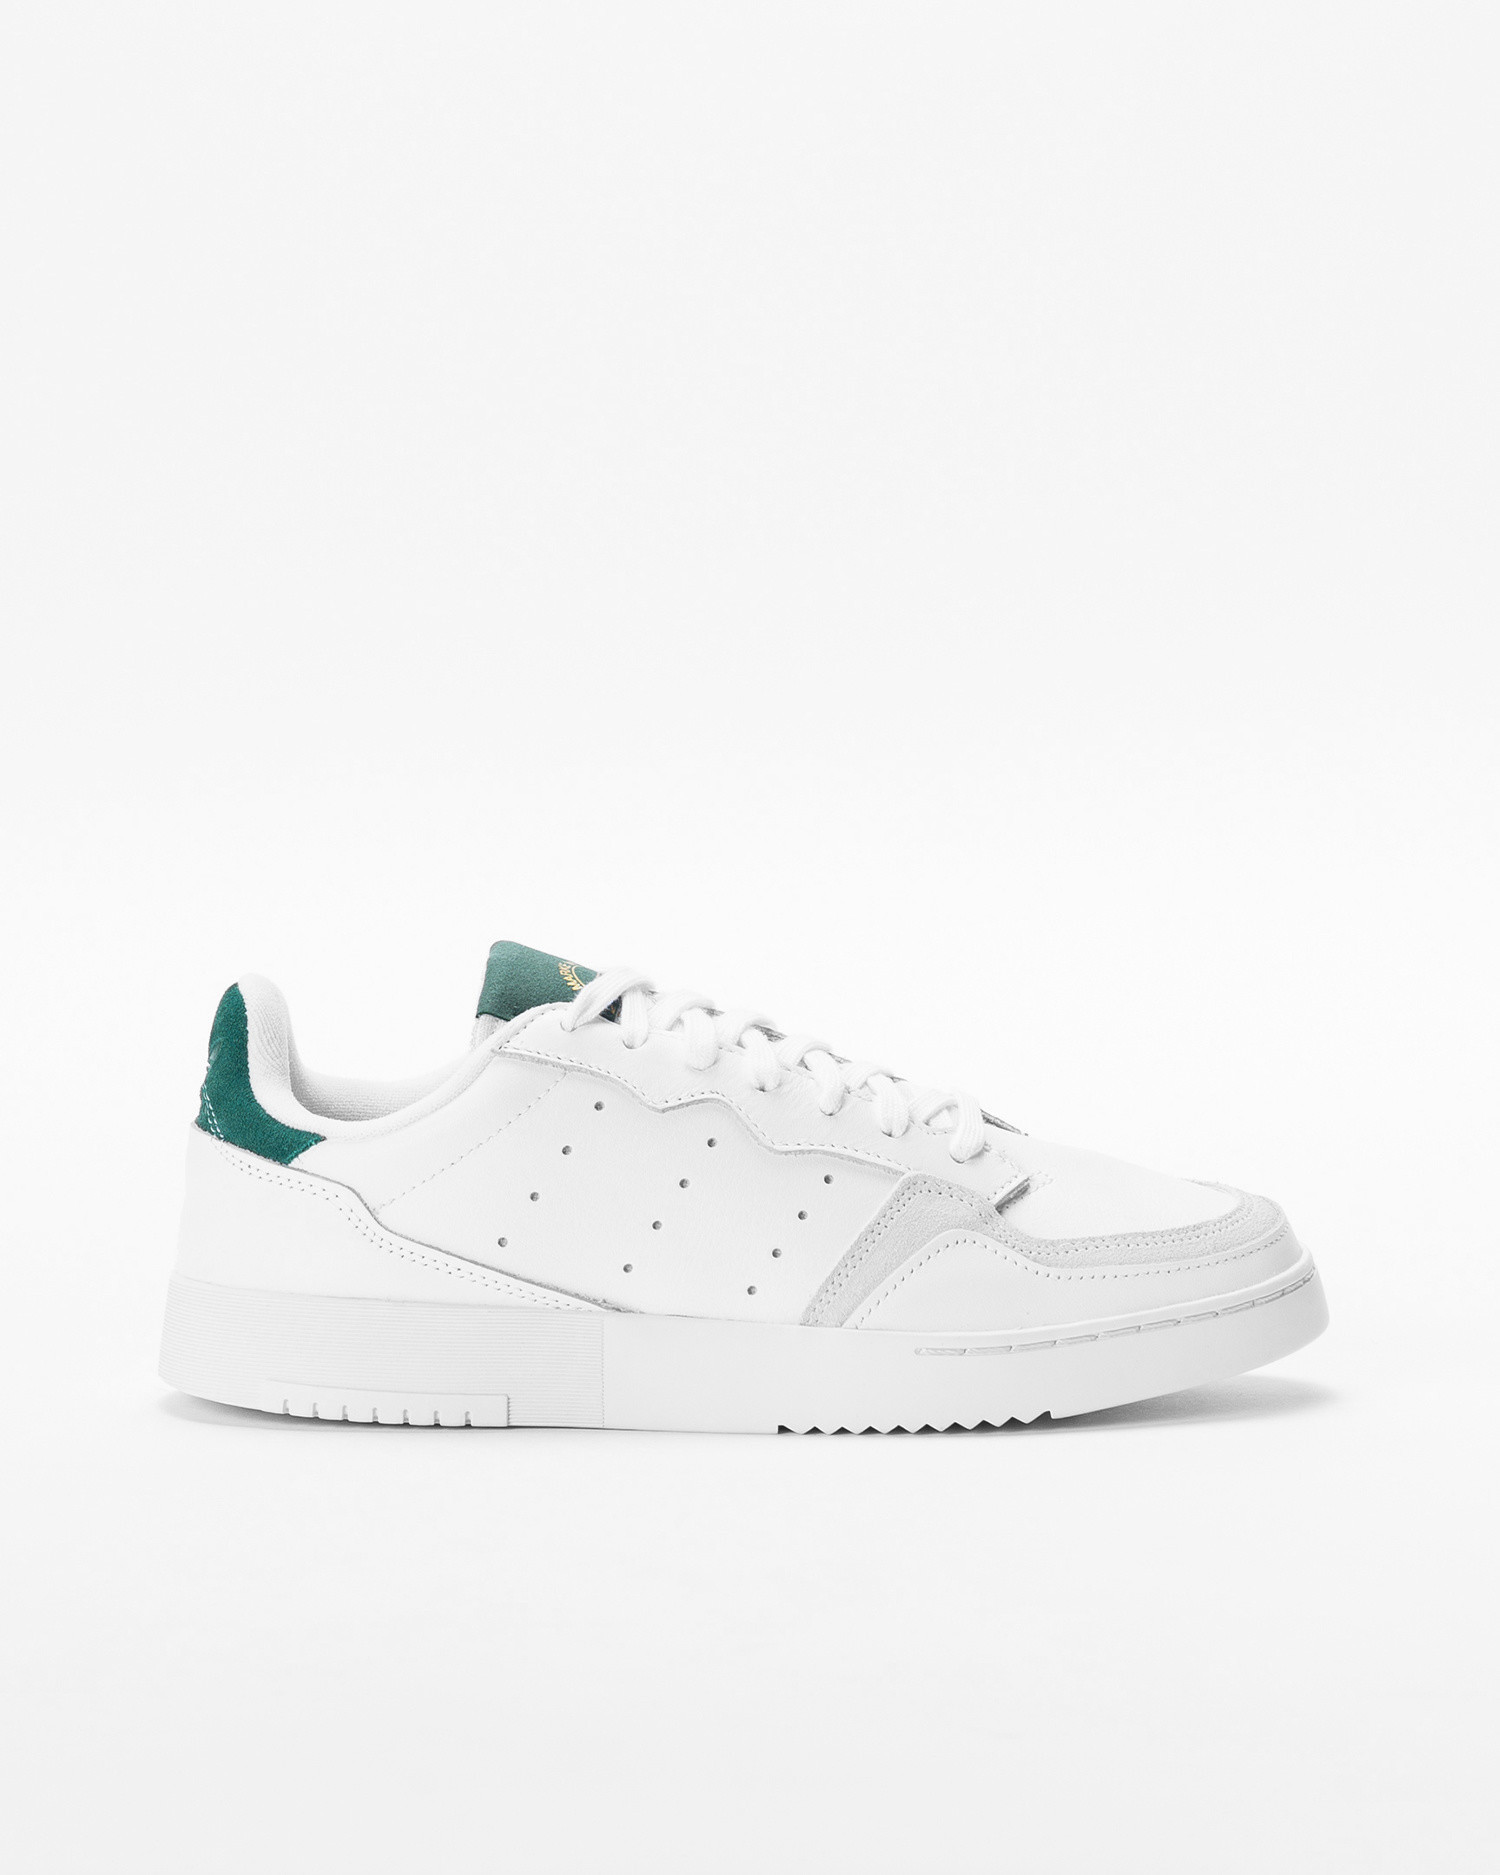 Adidas Supercourt Cloud White / Cloud White / Collegiate Green